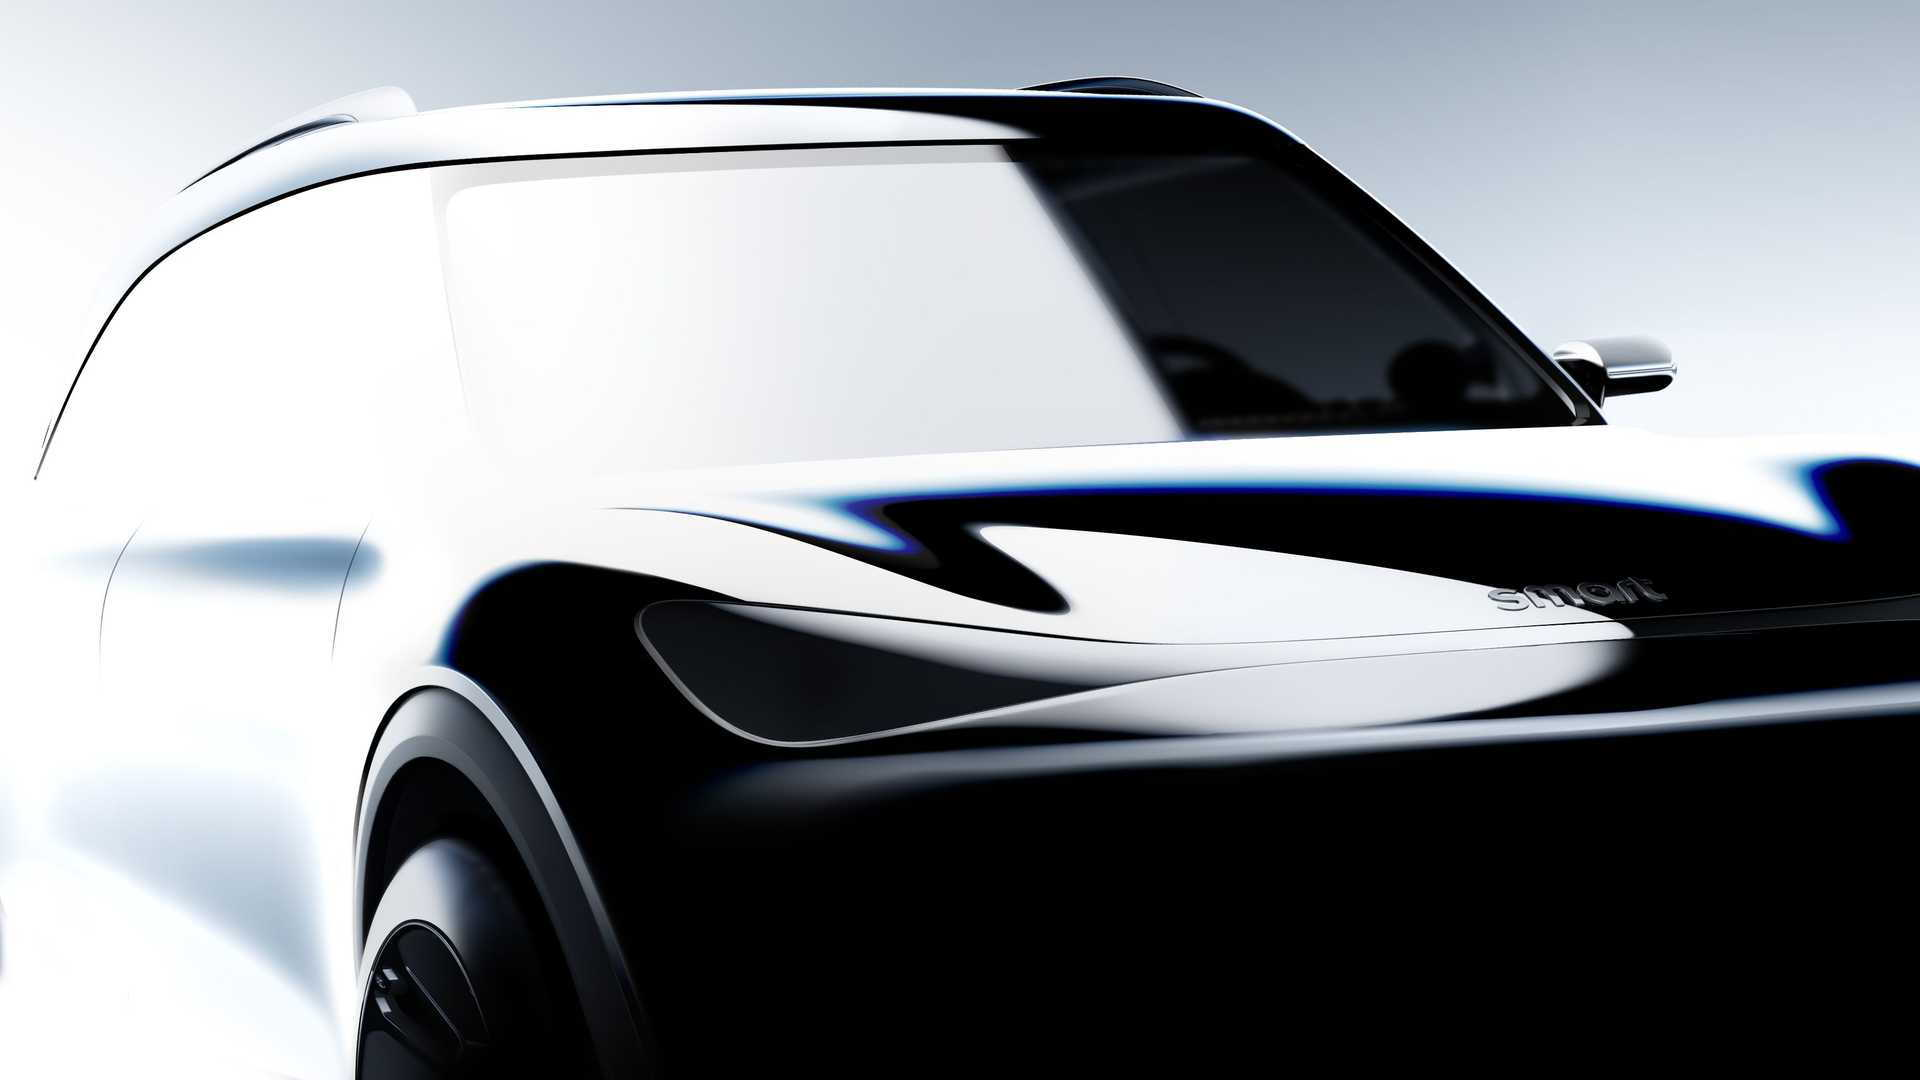 Teaser for Smart crossover concept debuting at 2021 Munich auto show